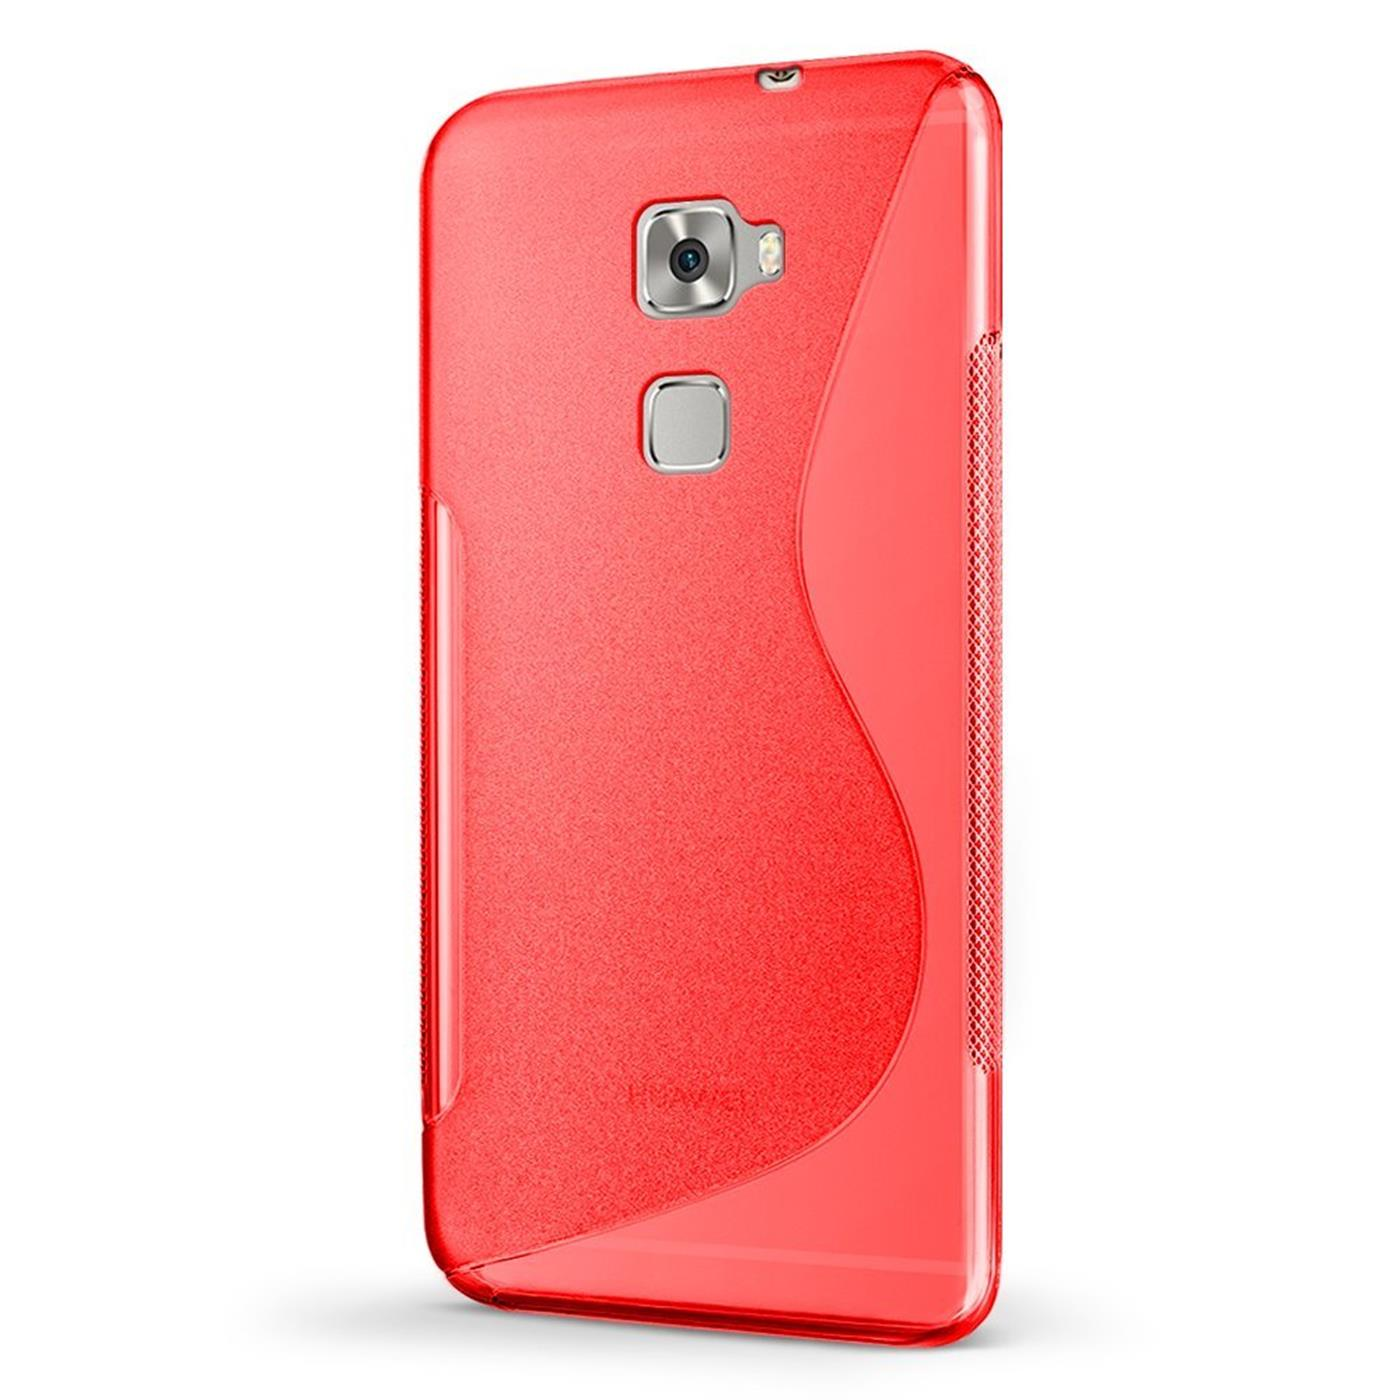 Huawei-Mate-8-Silikon-Gel-S-Line-Case-Cover-Ultra-Thin-Slim-Back-Bumper Indexbild 16